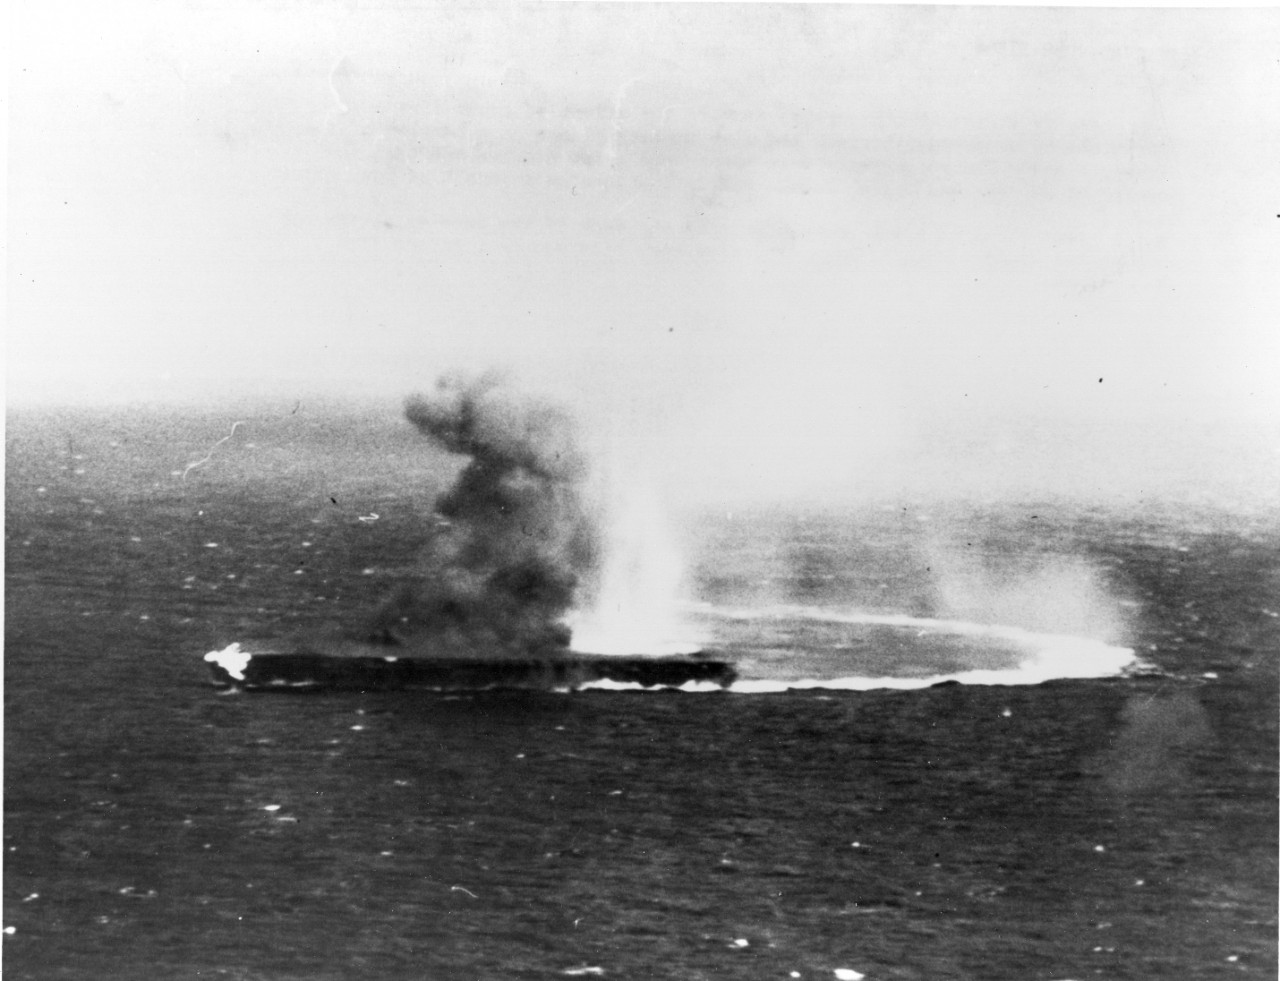 Photo #: 80-G-17031  Battle of Coral Sea, May 1942